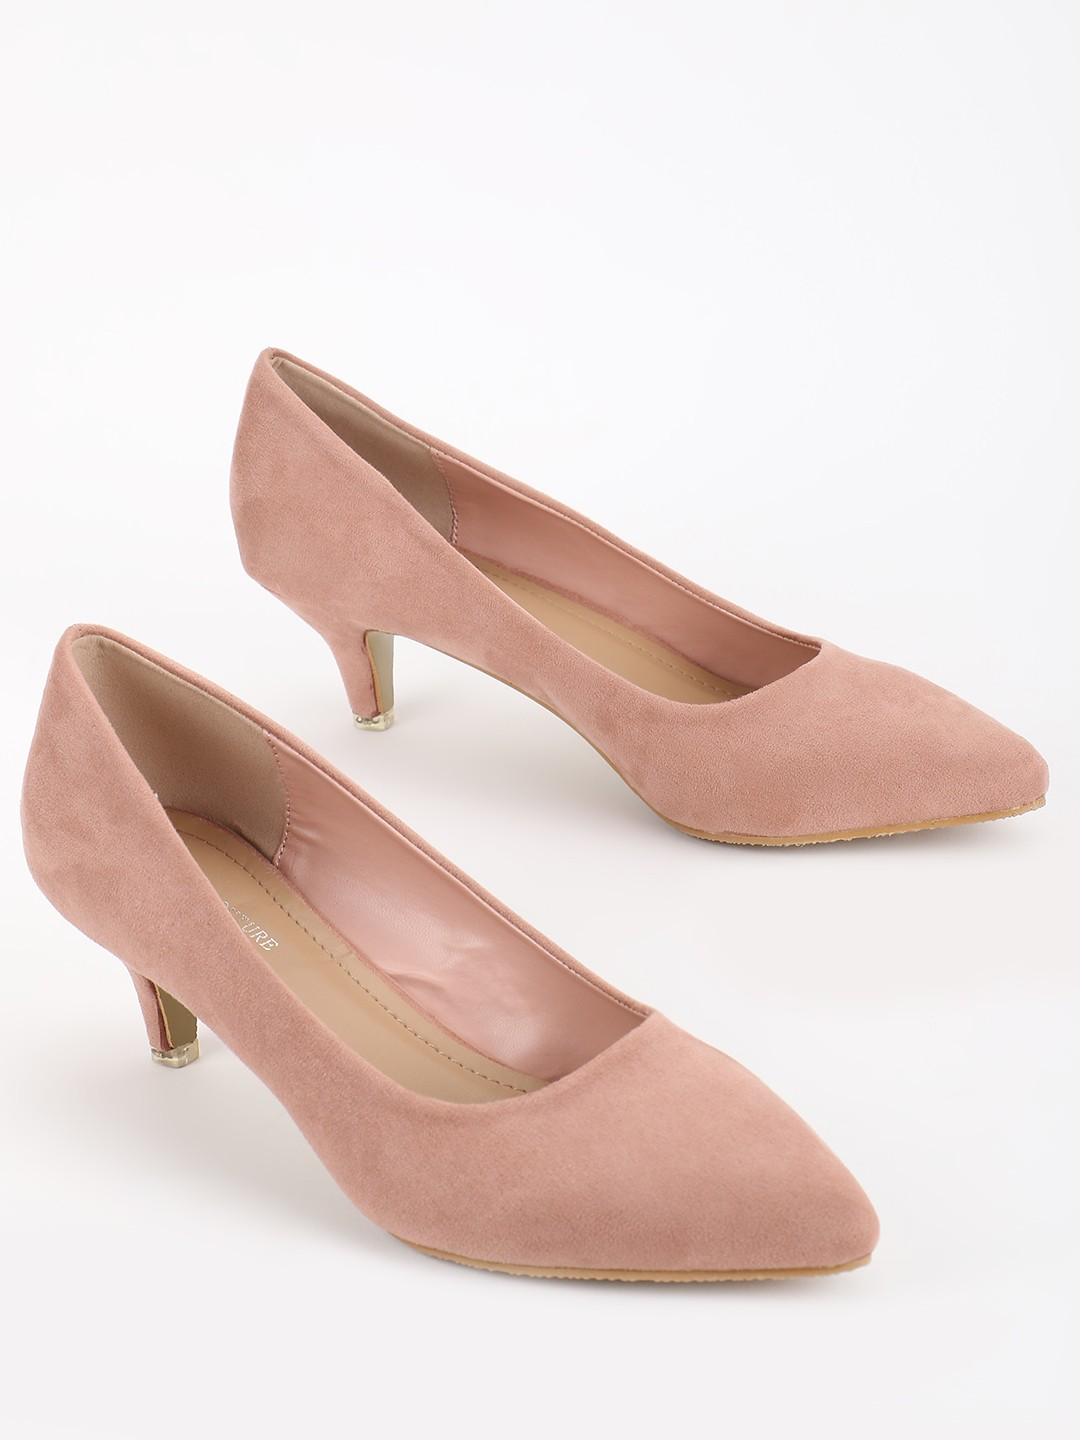 My Foot Couture Pink Suede Kitten Heeled Pumps 1